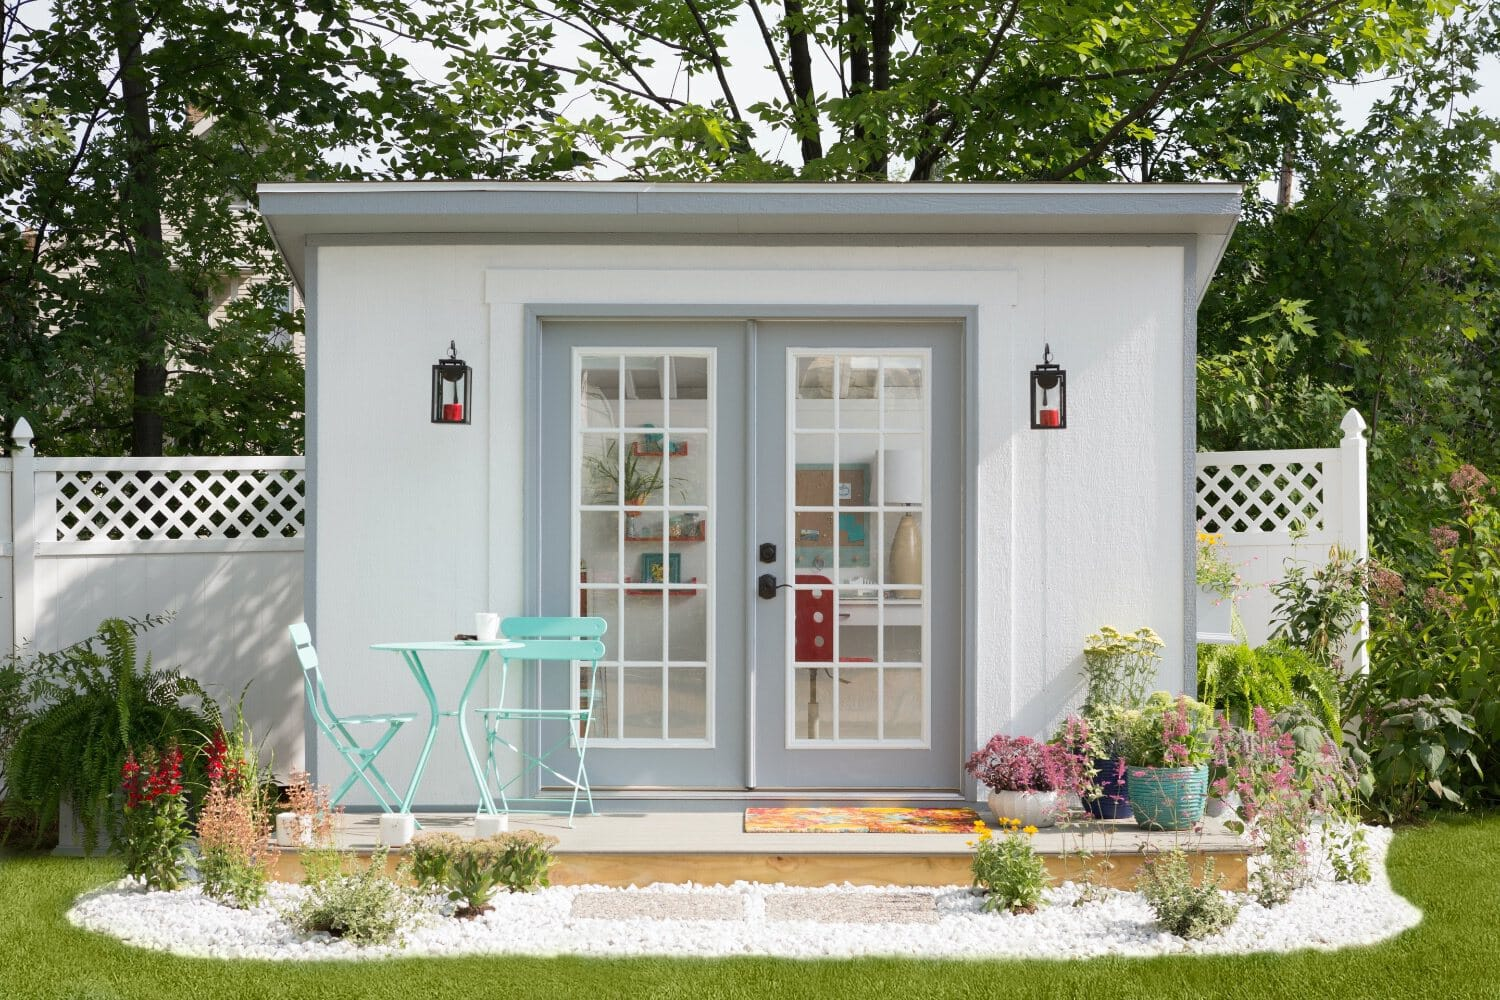 She shed by Lowe's; lowes.com